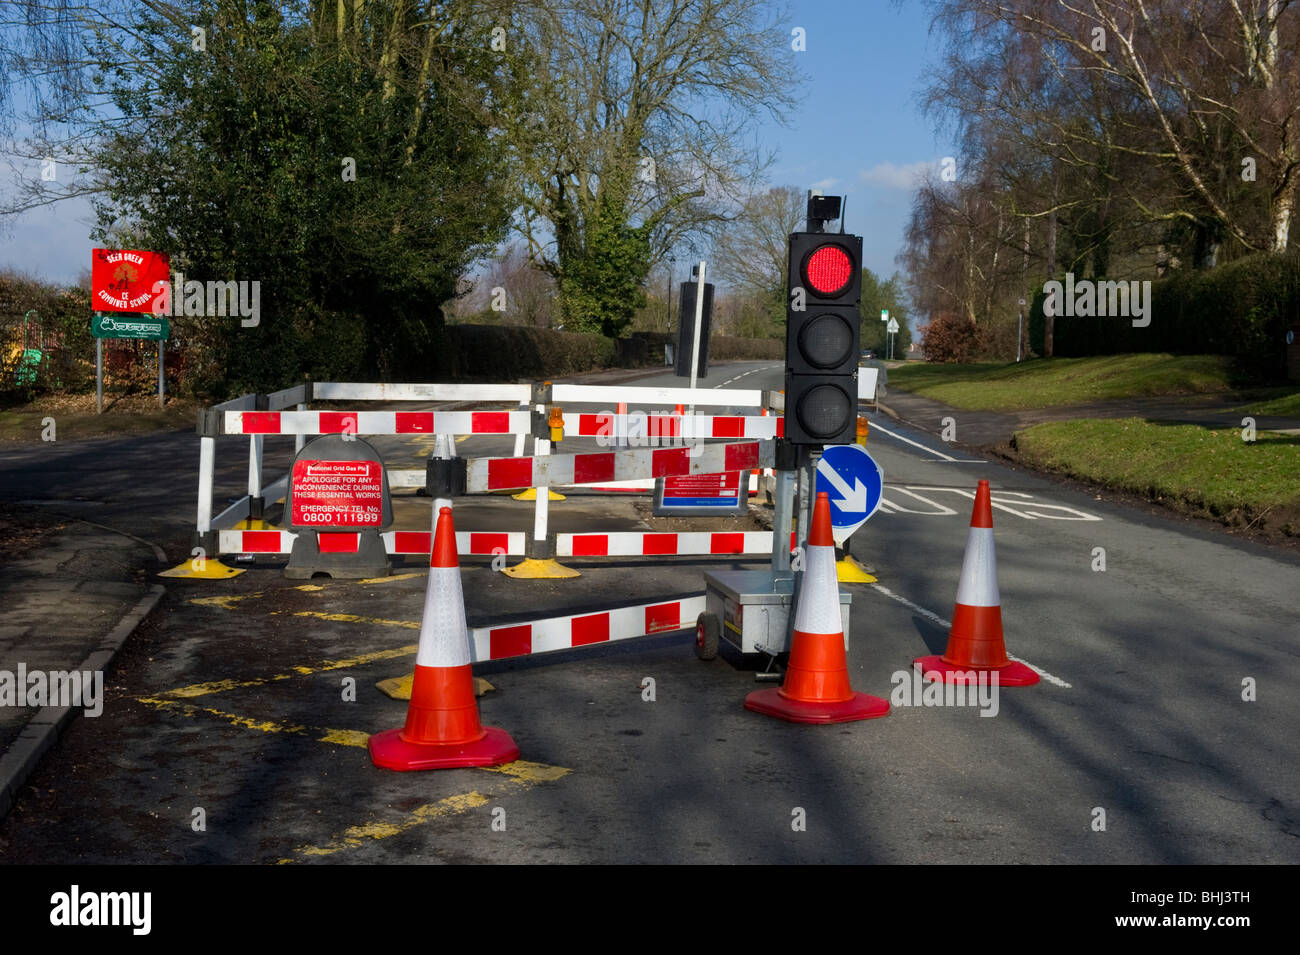 Traffic cones, barriers, temporary traffic lights at road